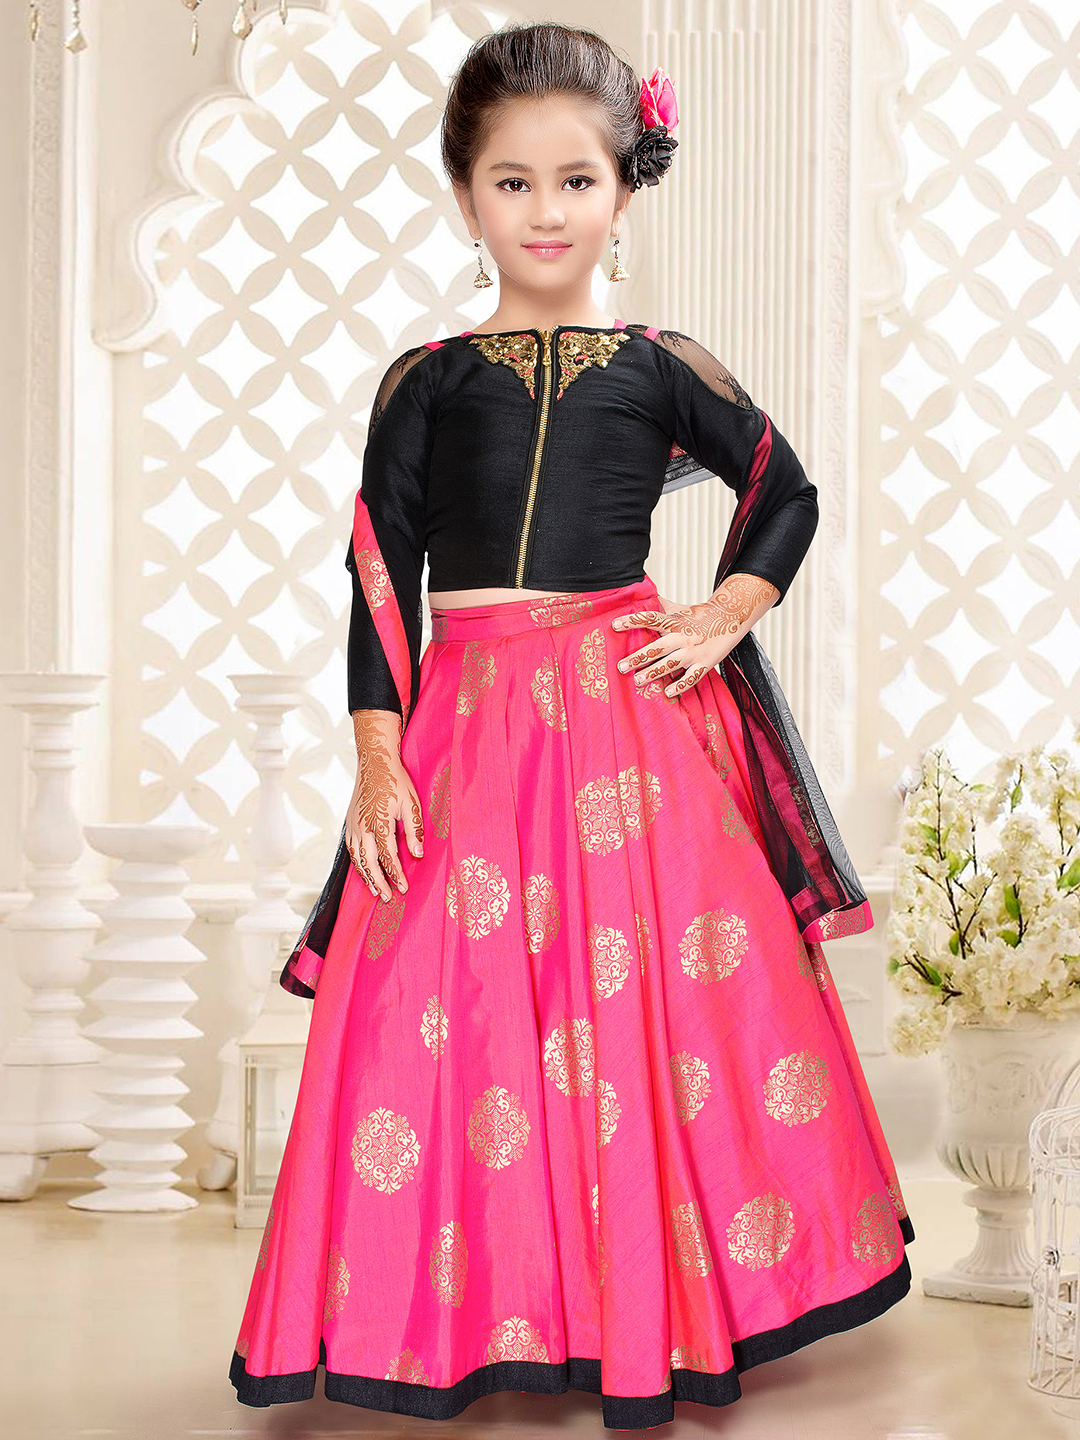 Top Indian wedding style for your little Princess | G3Fashion.com